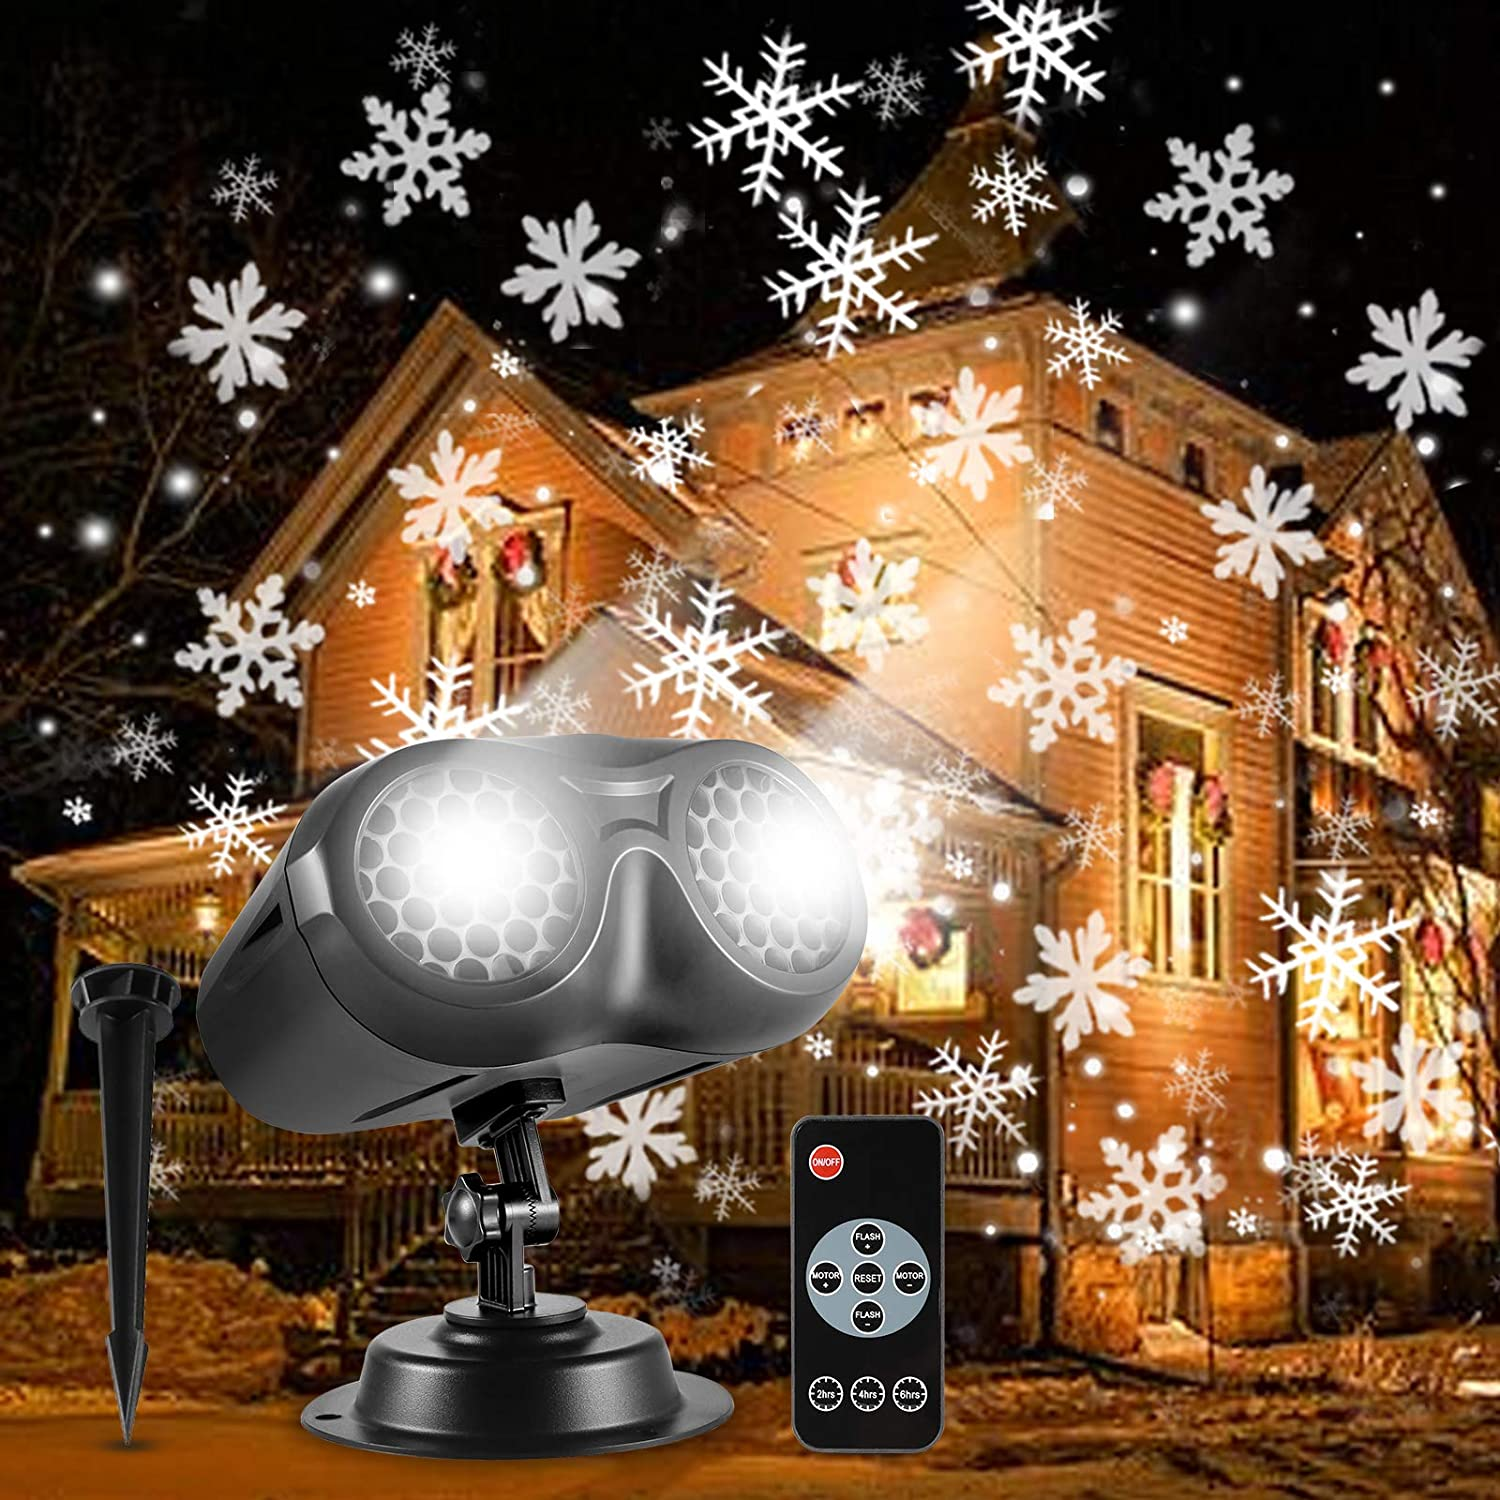 ALOVECO Christmas Lowest price Challenge the lowest price of Japan challenge Snowflake Projector LED Rotating Lights Snowf